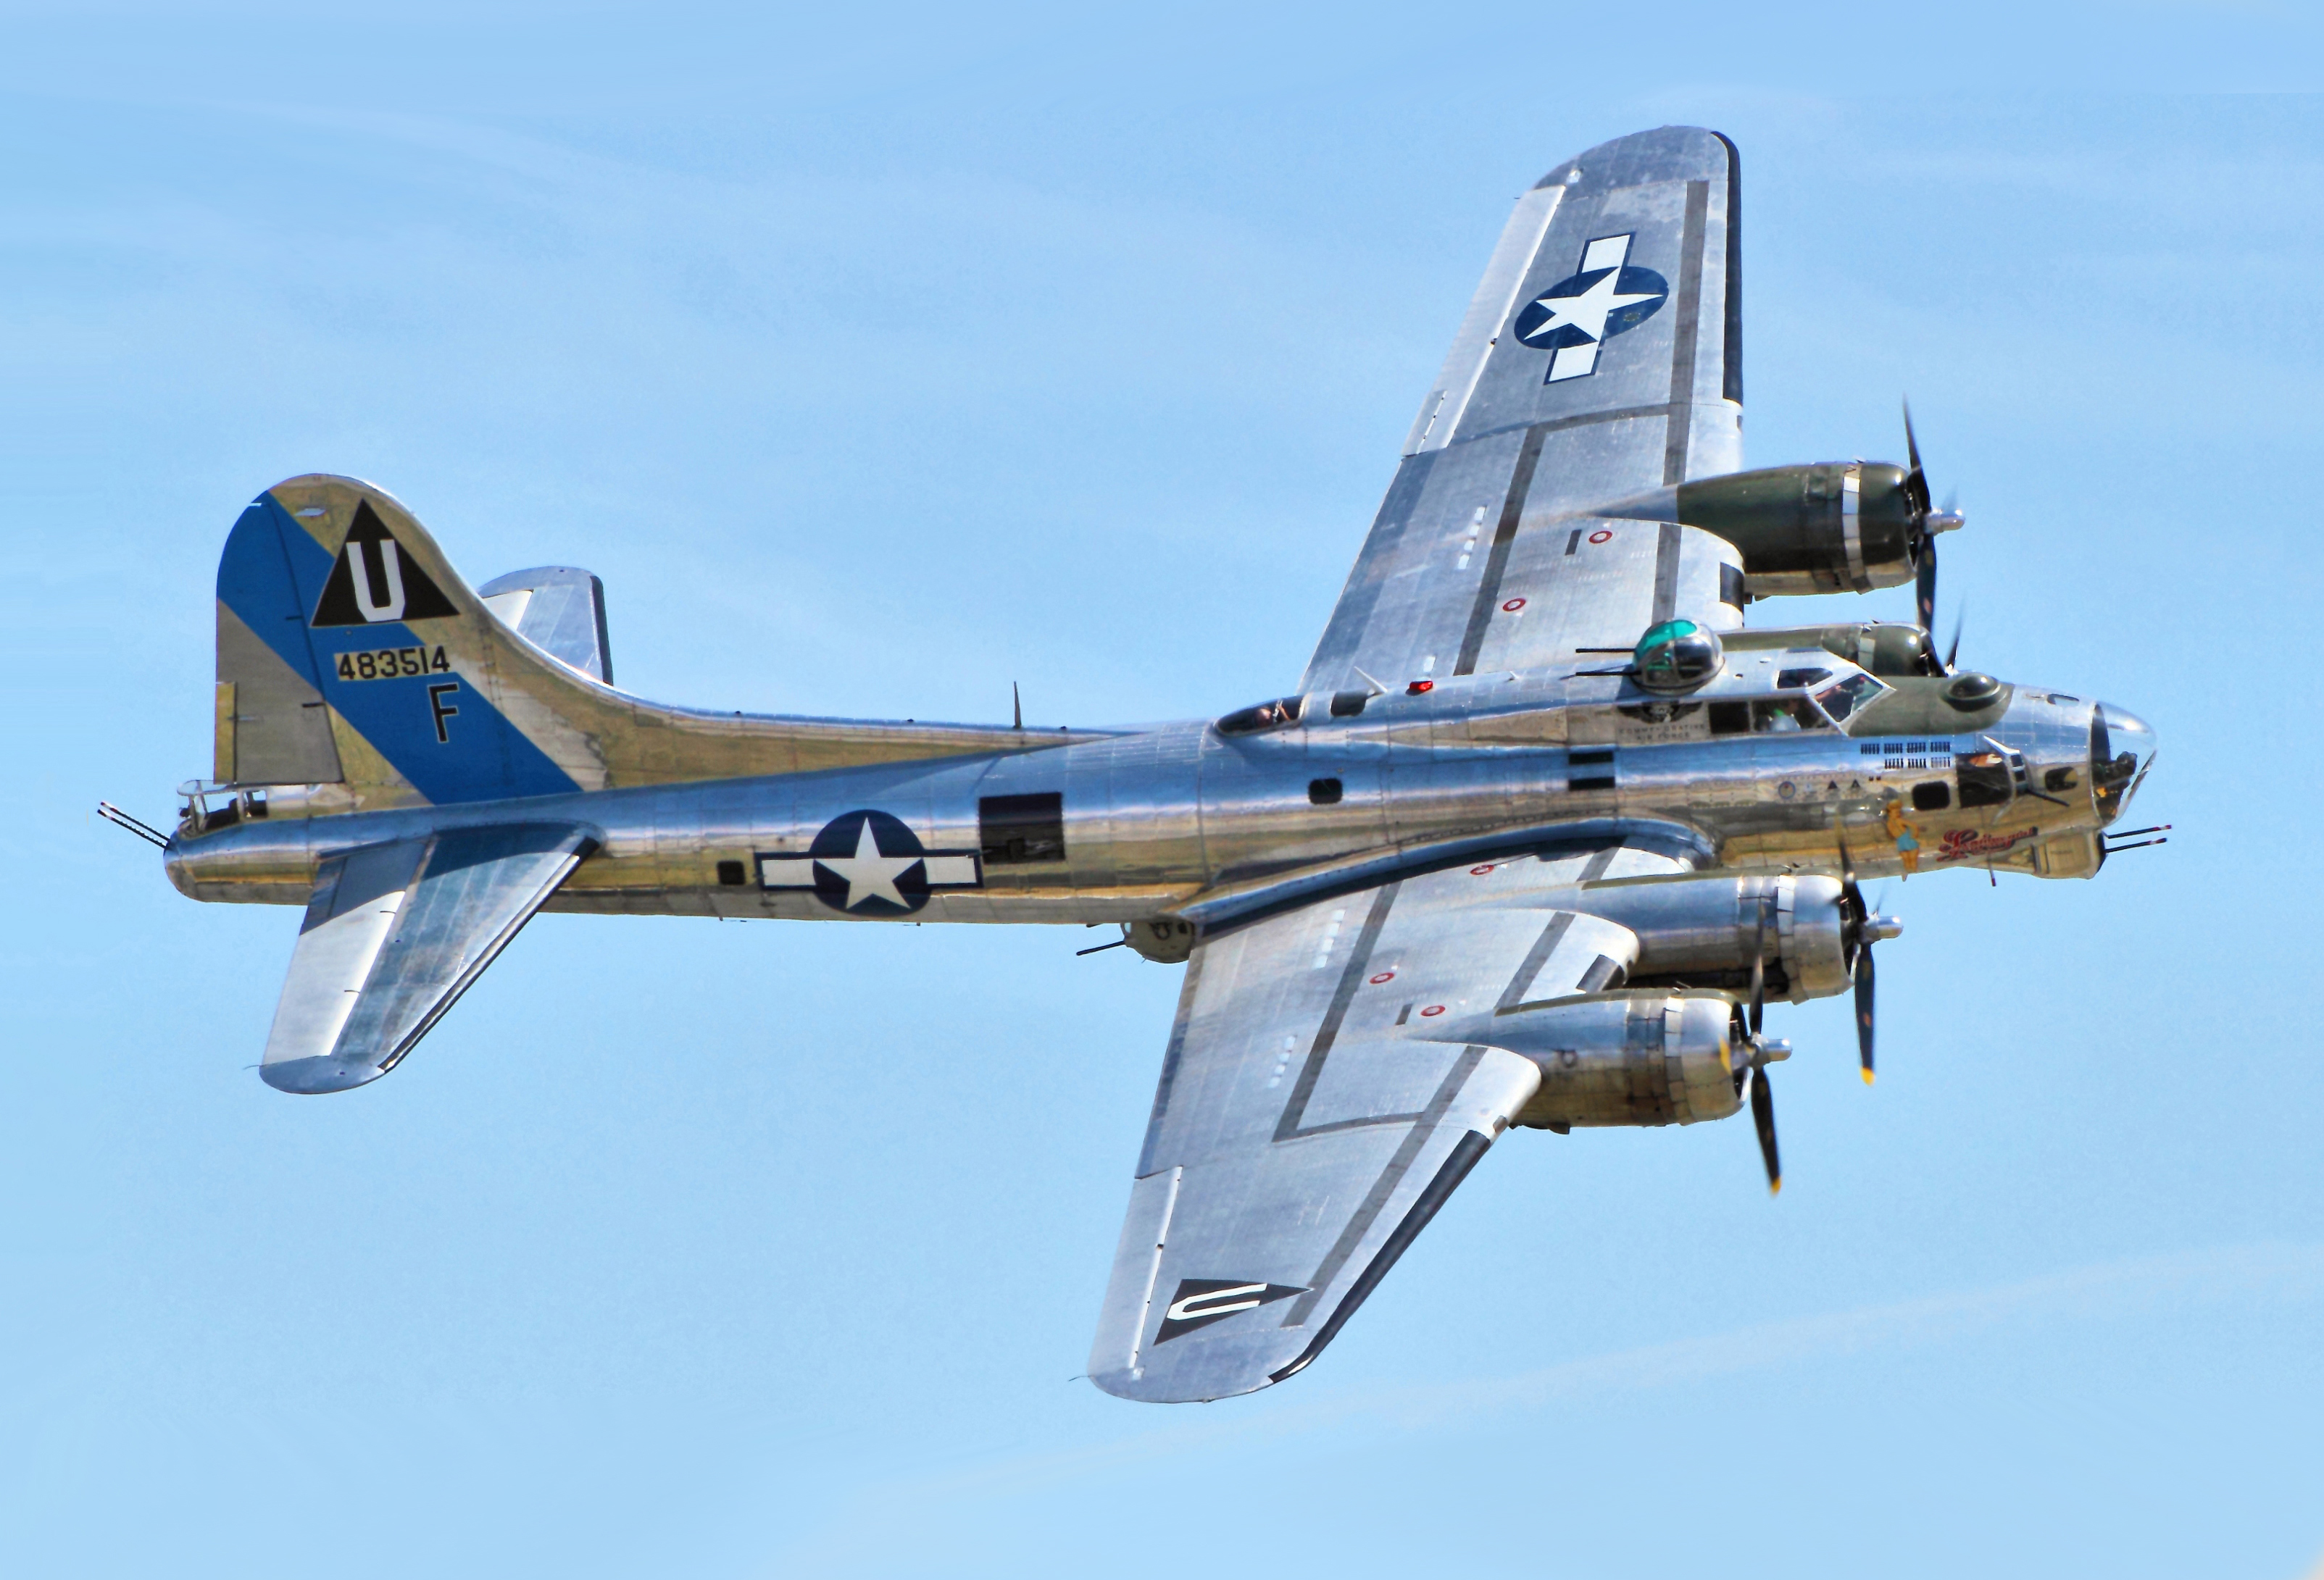 Awe Inspiring Boeing B 17 Flying Fortress Wikipedia Wiring Digital Resources Sapebecompassionincorg